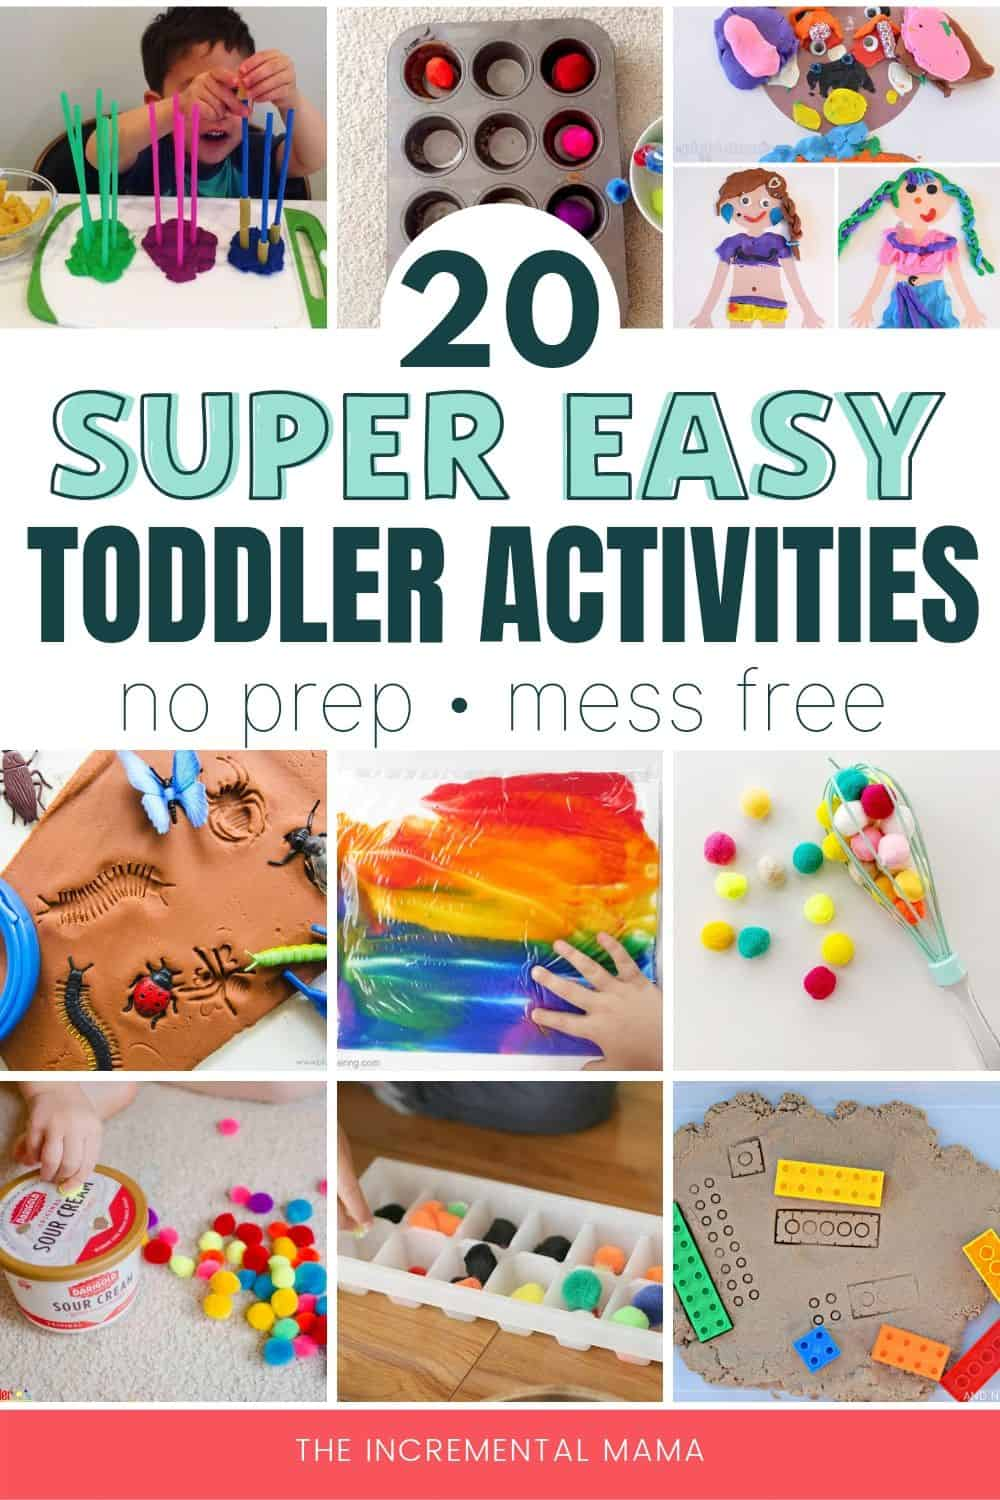 easy mess fress activities fore 2 year-olds